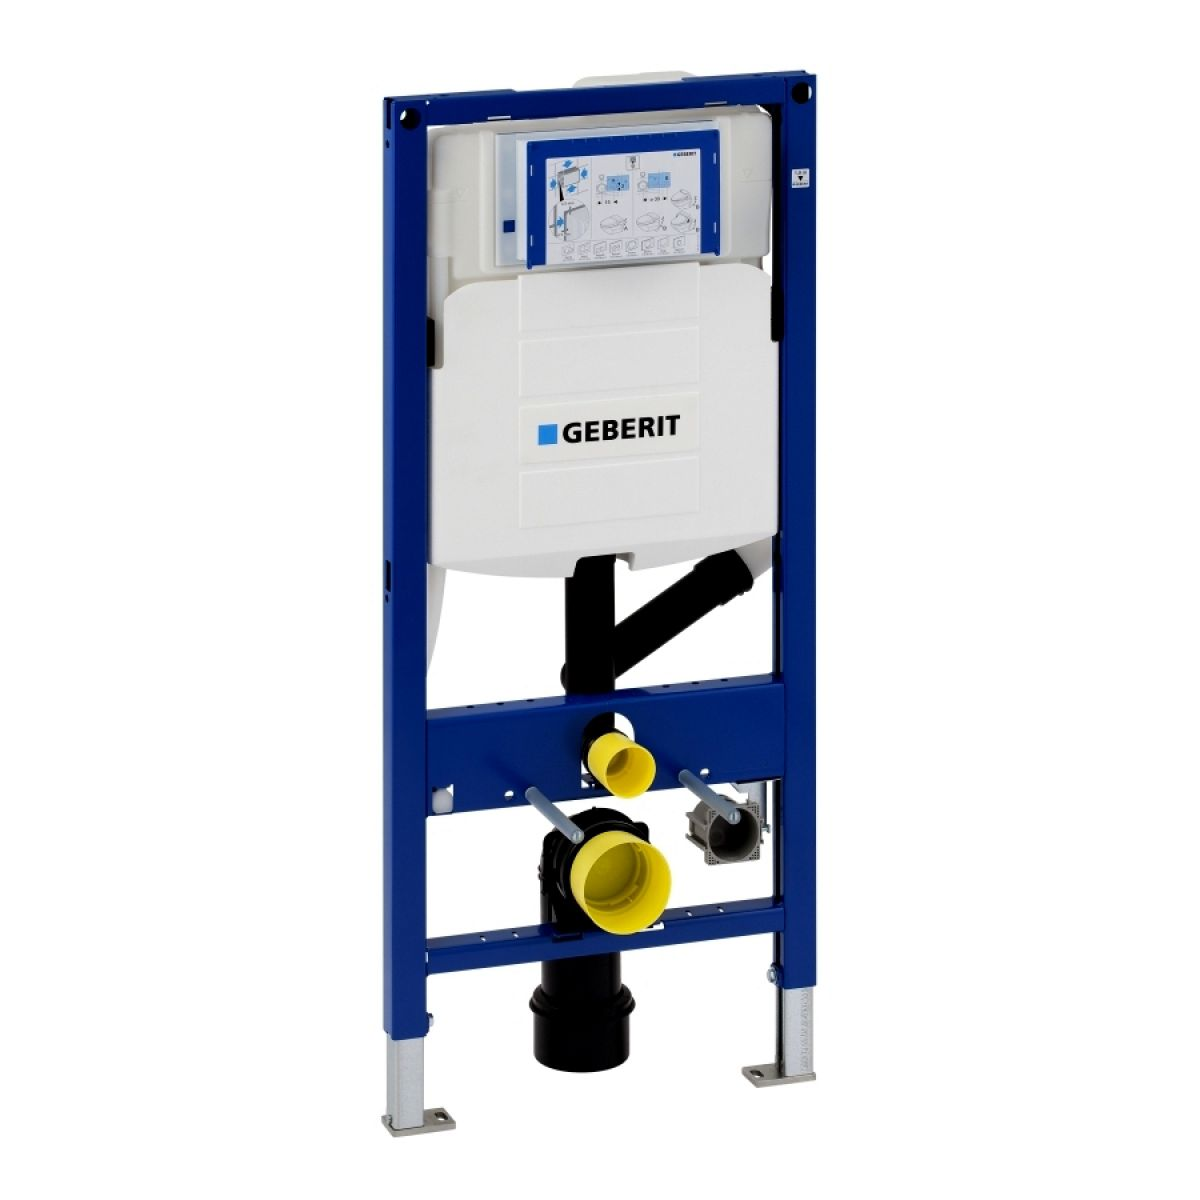 Geberit duofresh wc frame with odour extraction uk for Geberit us